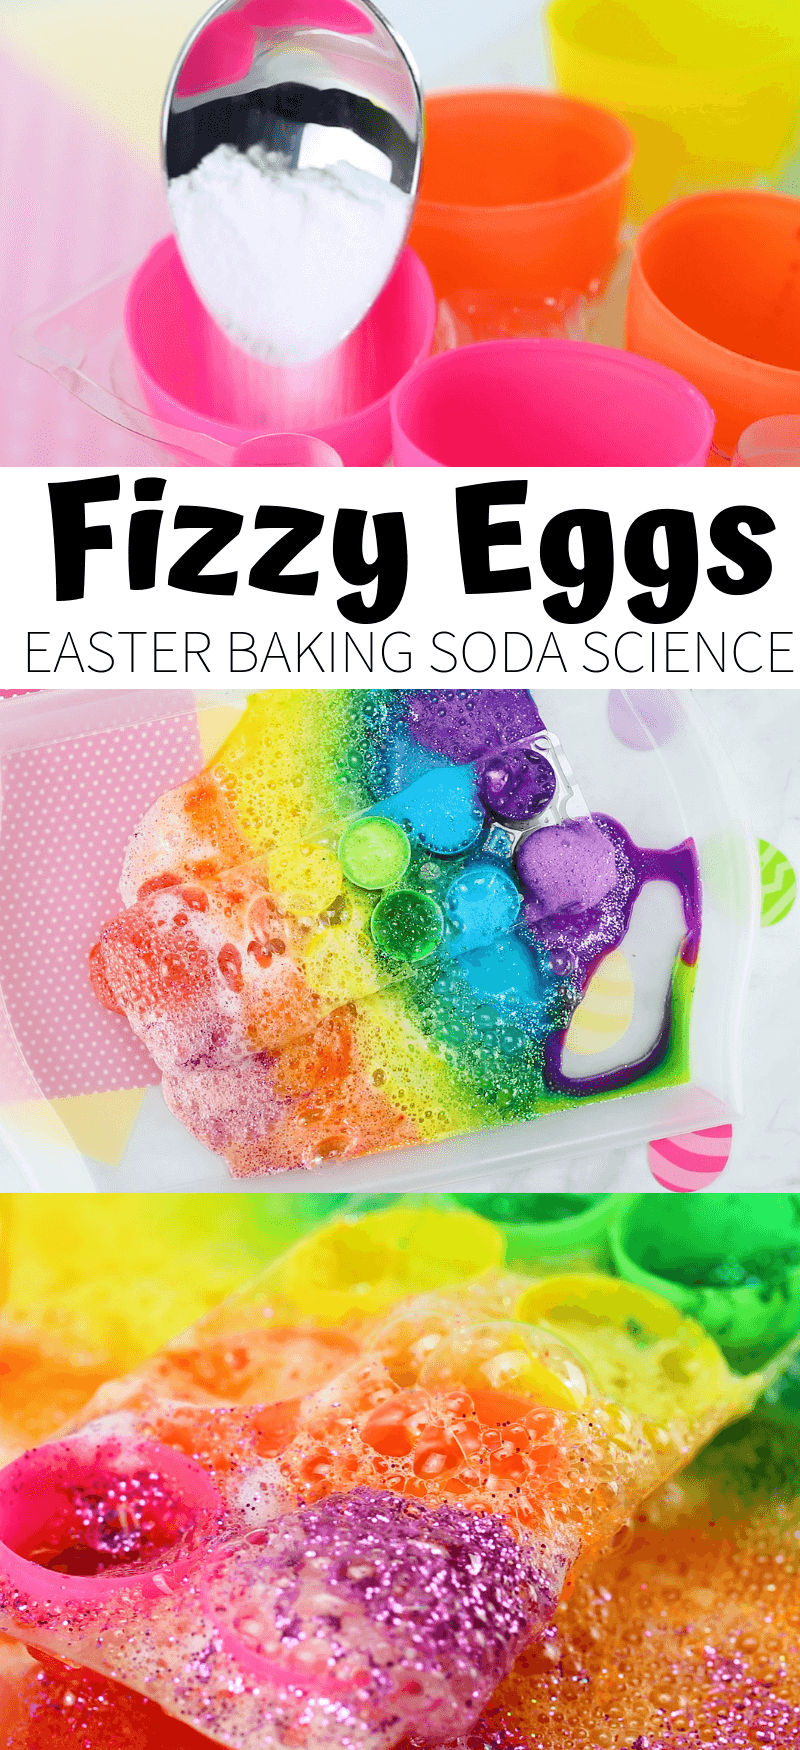 baking soda and vinegar reaction for Easter rainbow eggs